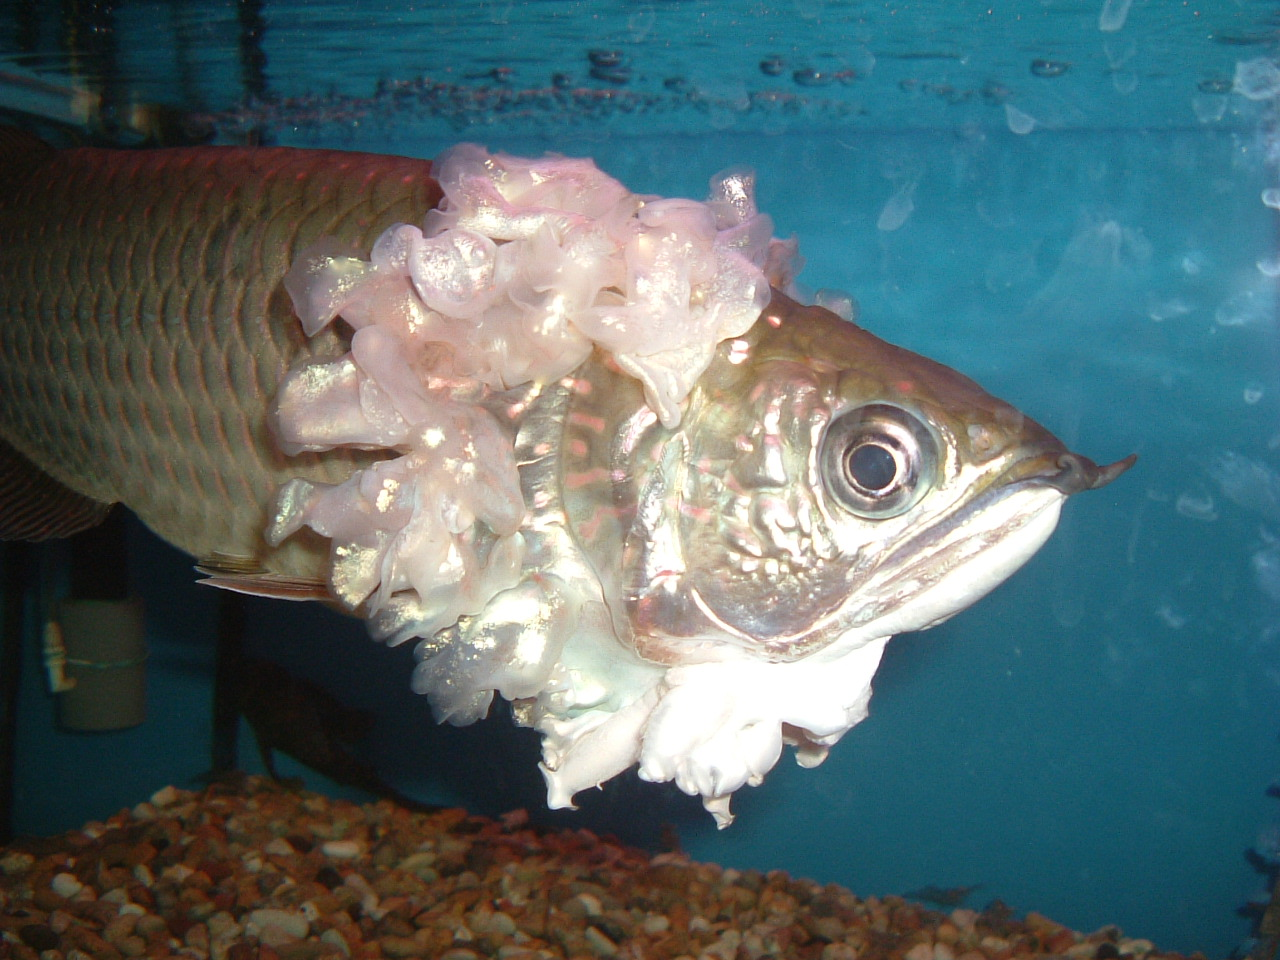 Freshwater aquarium fish lifespan - Arowana Fish Are Freshwater Bony Fish Of The Family Osteoglossidae Also Known As Bonytongues In This Family Of Fish The Head Is Bony And The Elongate